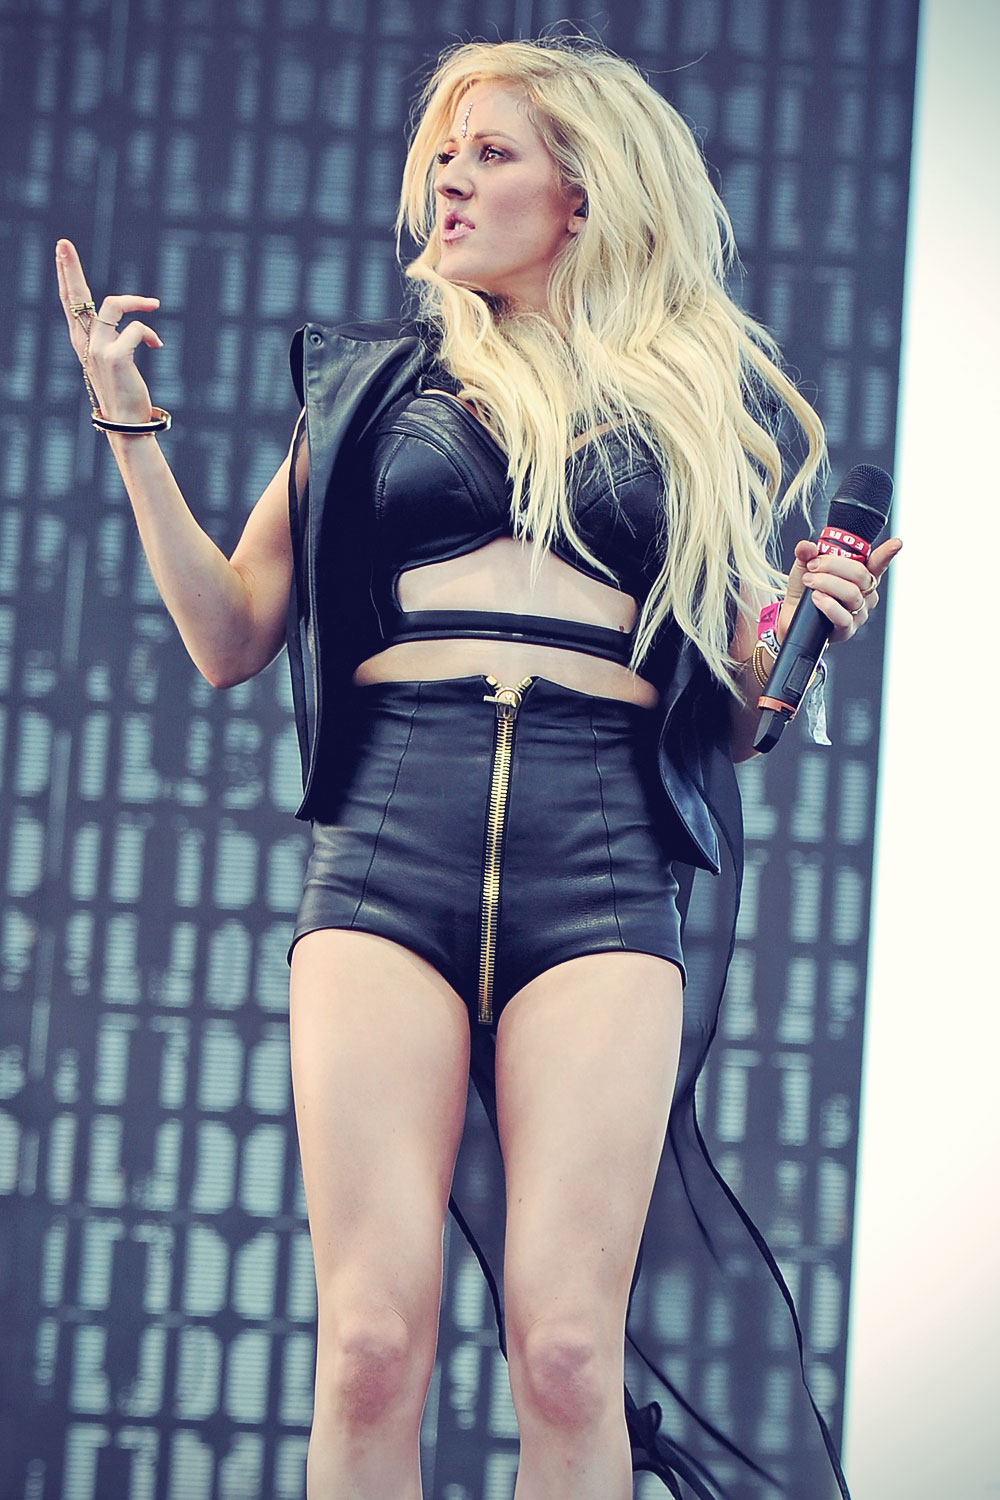 Ellie Goulding performs onstage at the 2014 Coachella